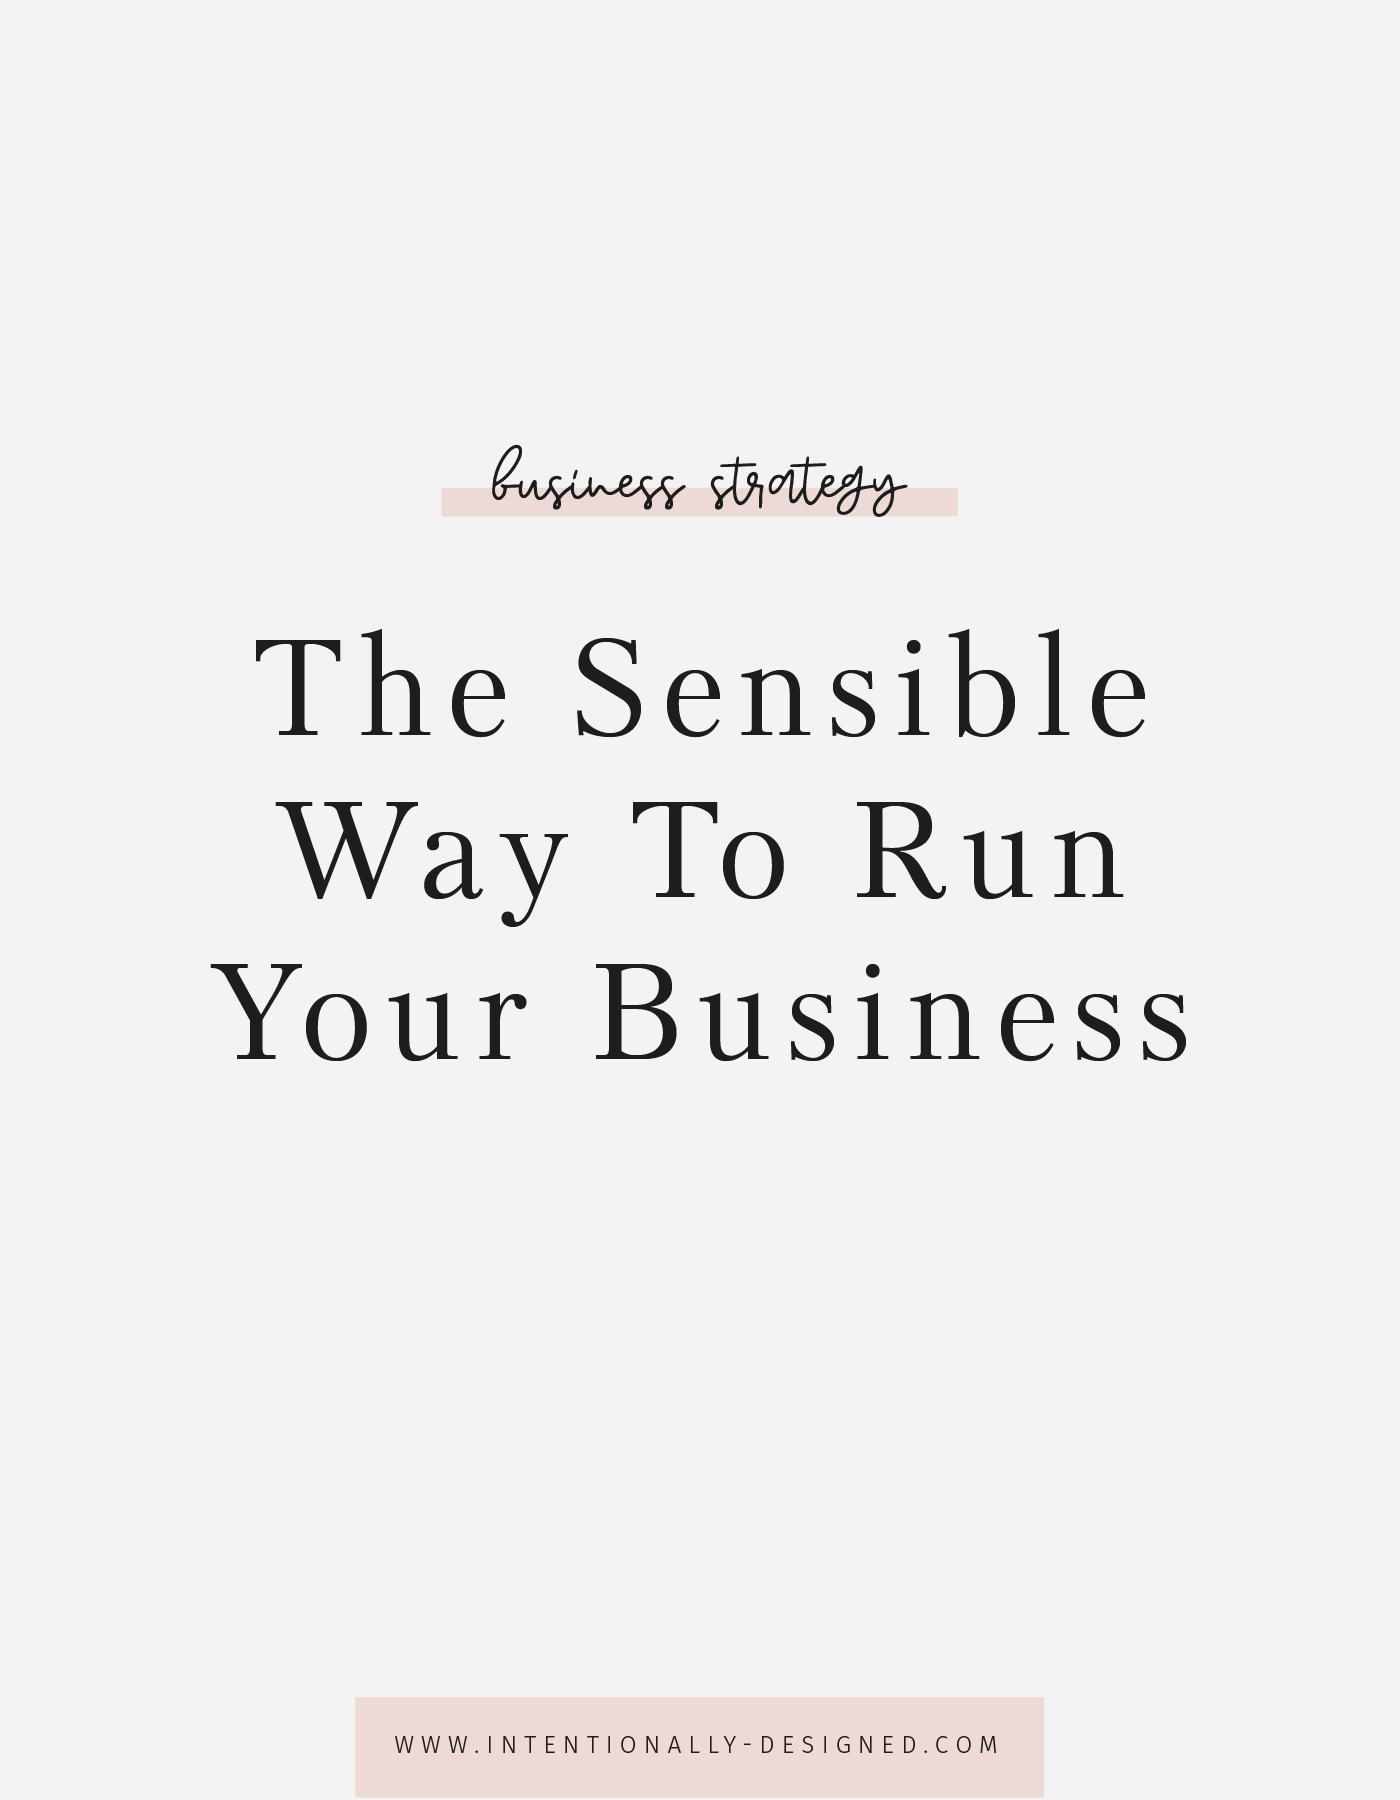 The Sensible Way To Run Your Business